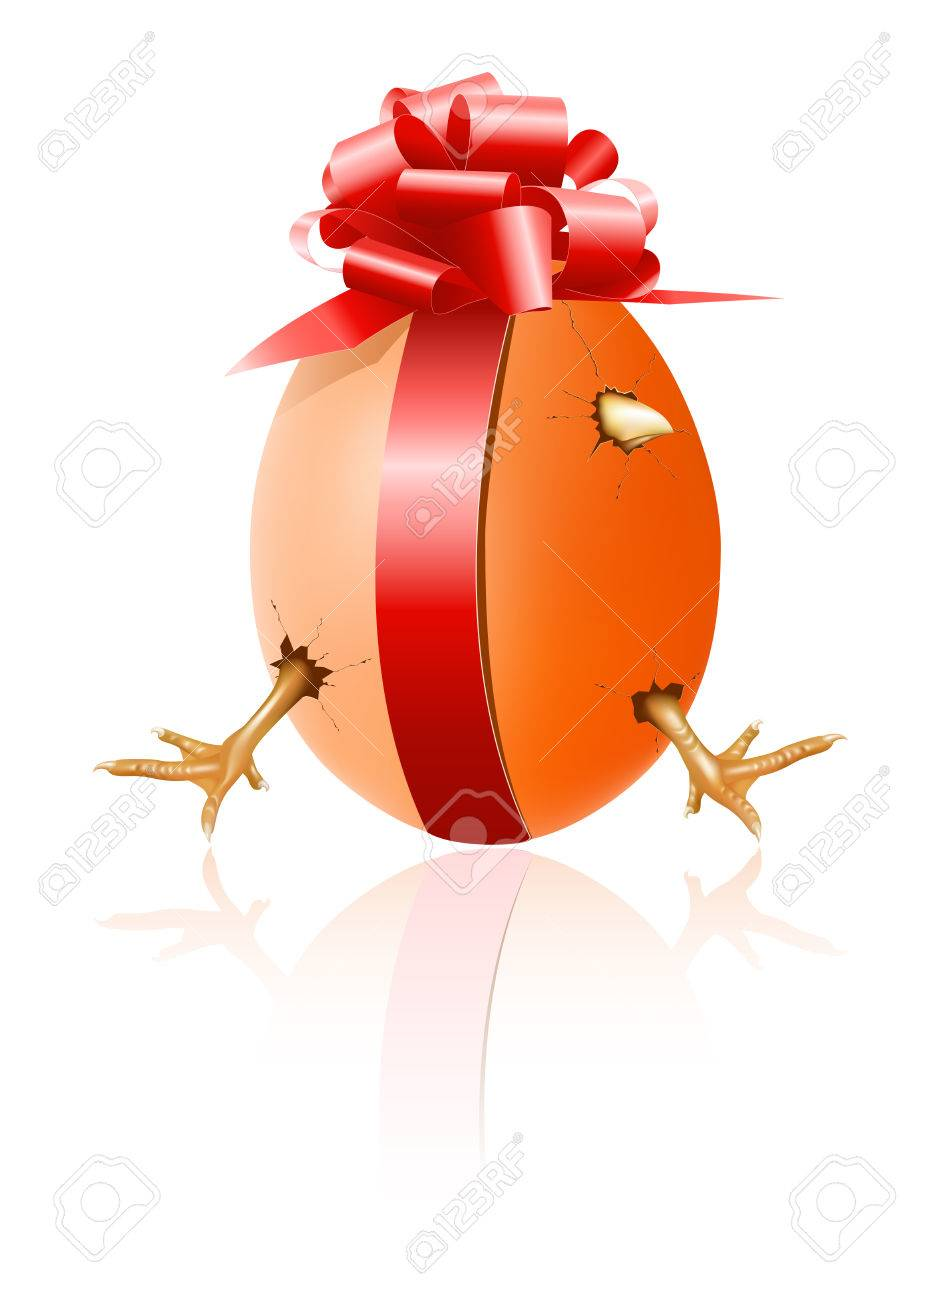 Hen's egg with chicken inside and red gift bow. Happy Easter! Stock Vector - 6585490